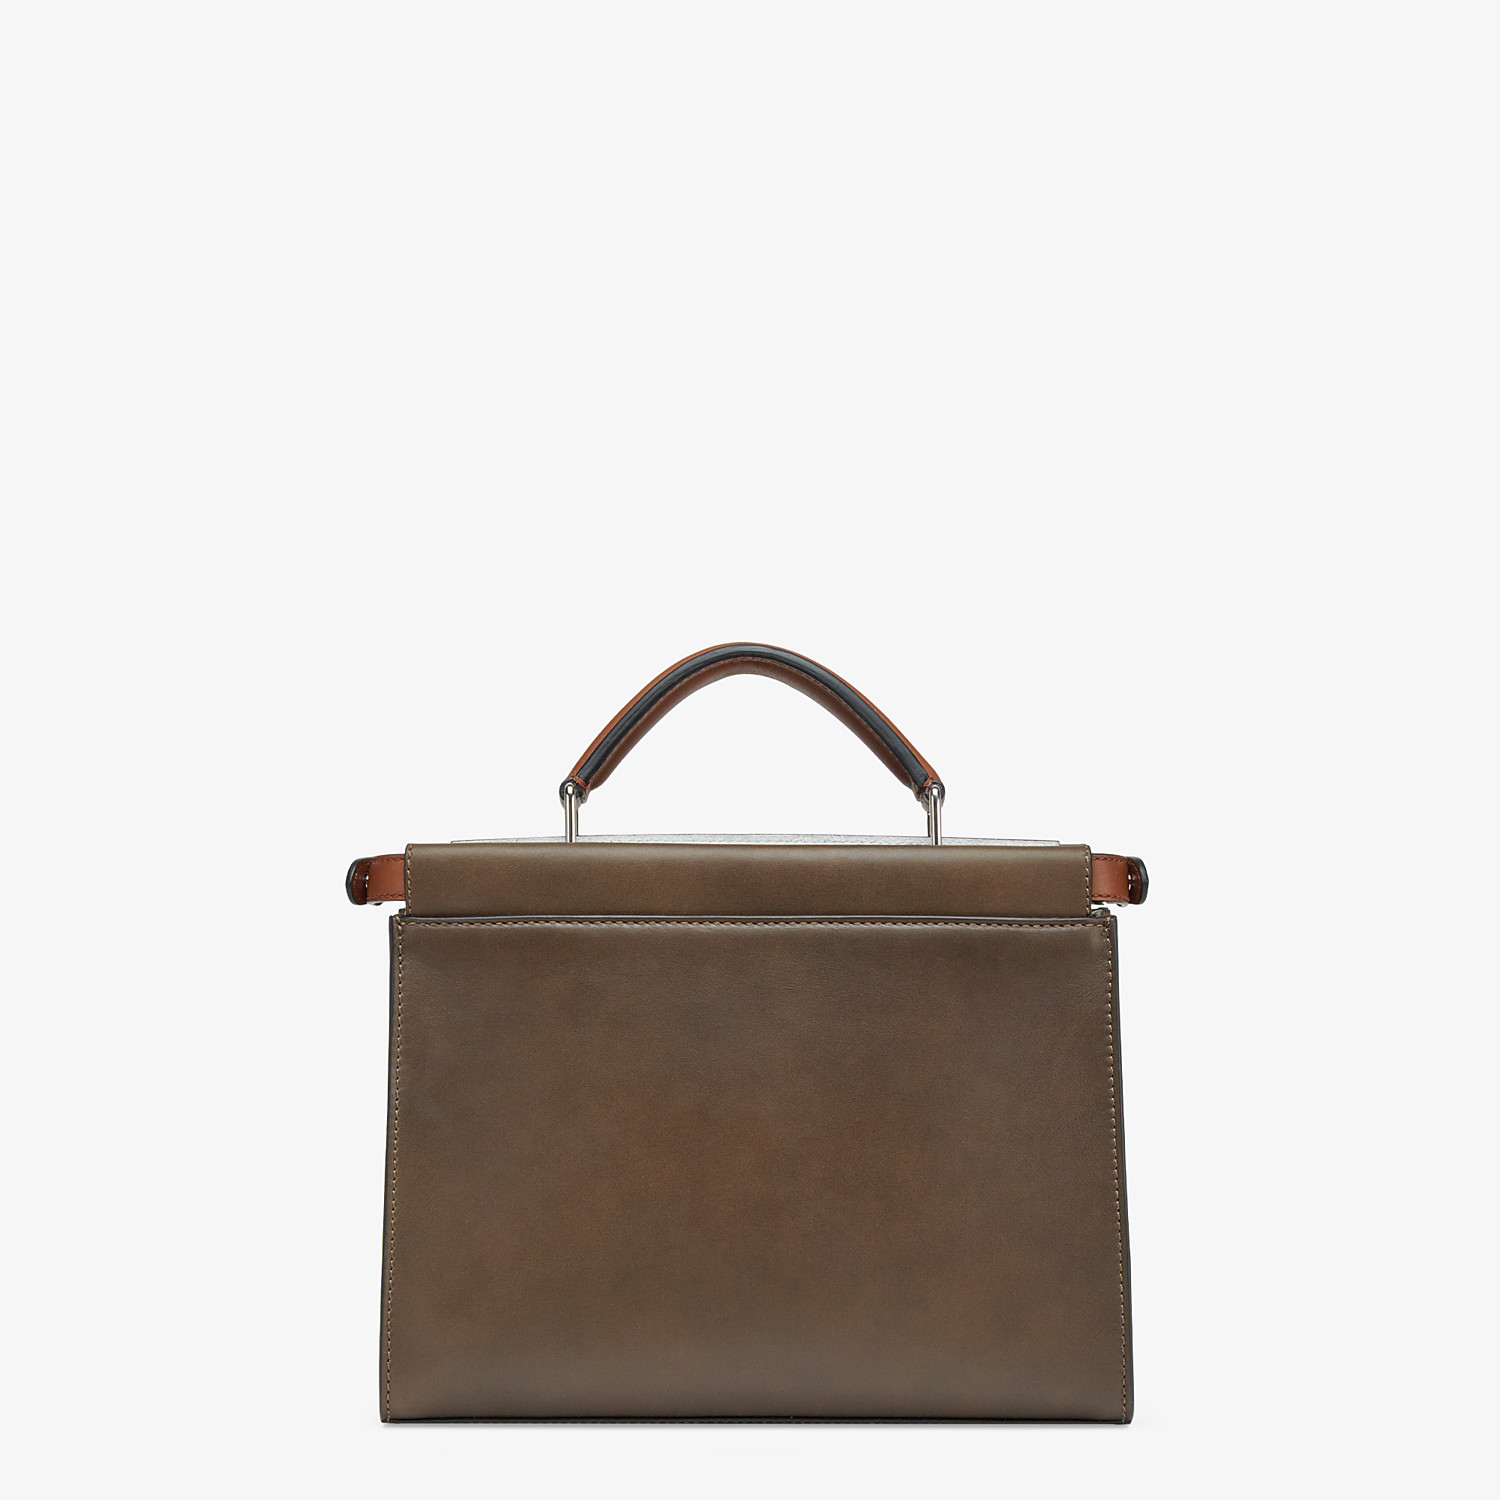 FENDI PEEKABOO ICONIC FIT MINI - Brown leather bag - view 3 detail